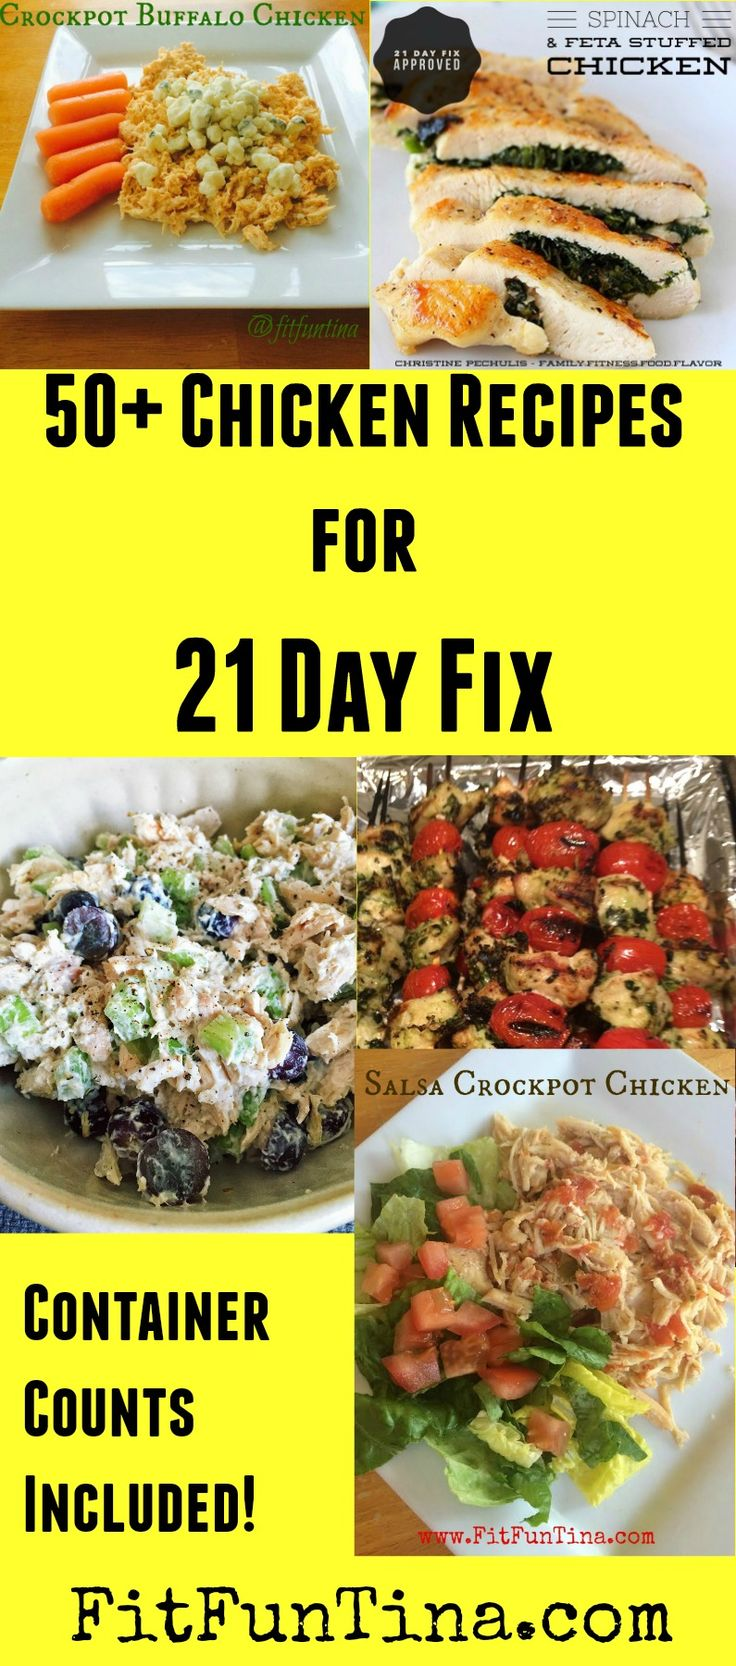 If you've got chicken and looking for some meal inspiration, here are 50+ 21 Day Fix Chicken Recipes that will keep you lean and clean! For more recipes and 21 Day Fix resources, head to www.FitFunTina.com